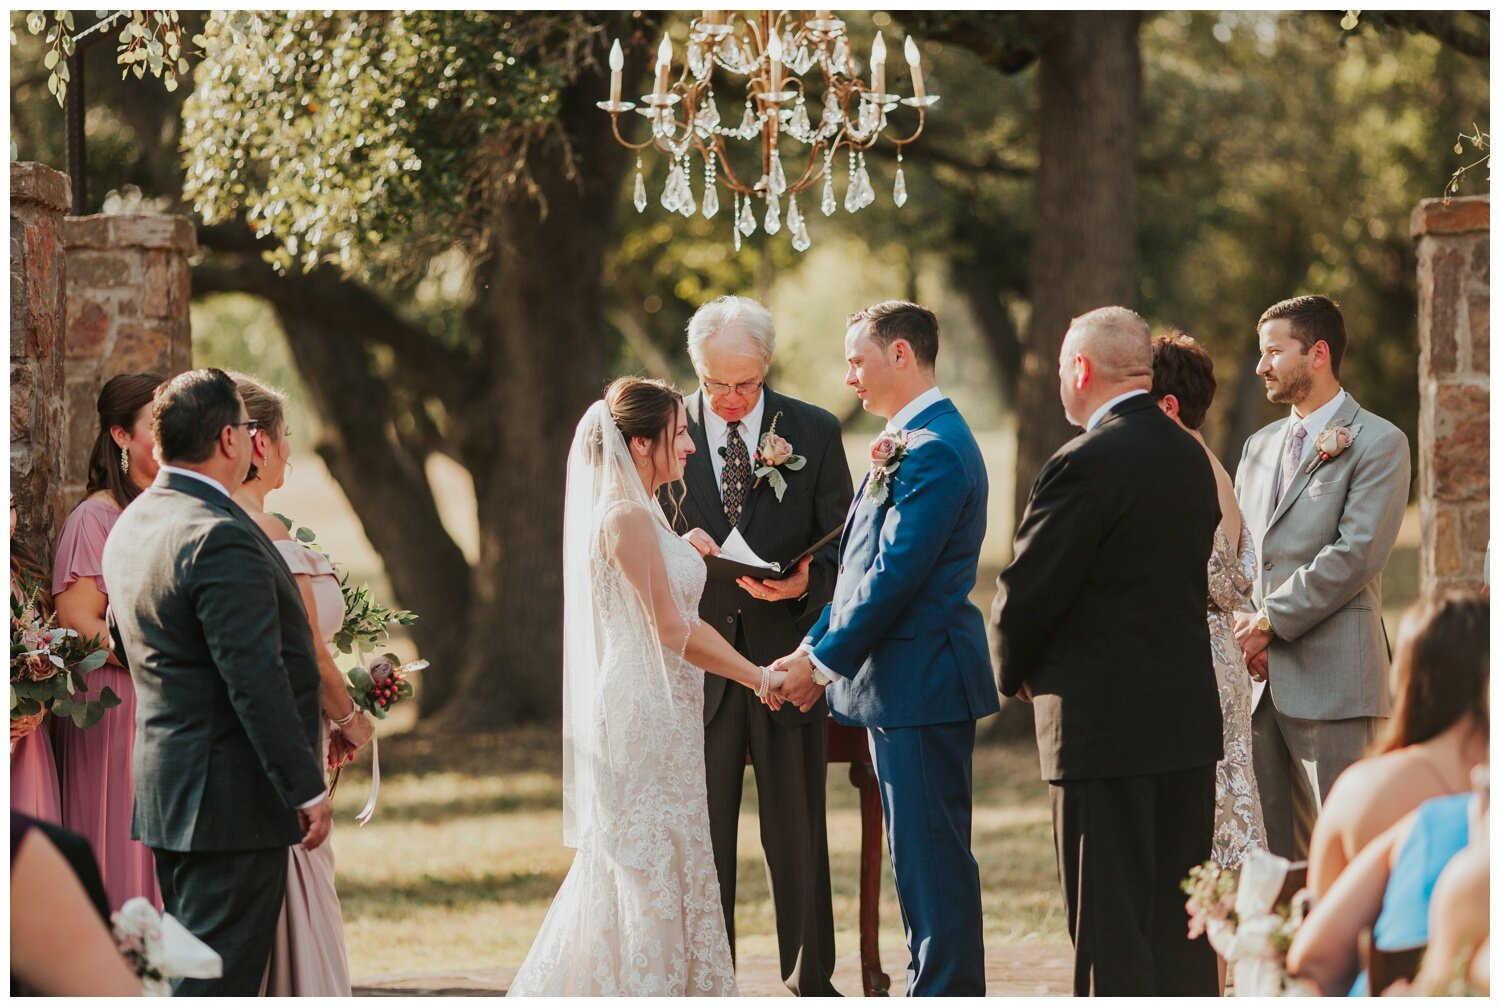 Modern Wedding at Ma Maison in Dripping Springs, Austin, Texas (Joshua and Parisa – Austin Wedding Photographer)_0038.jpg